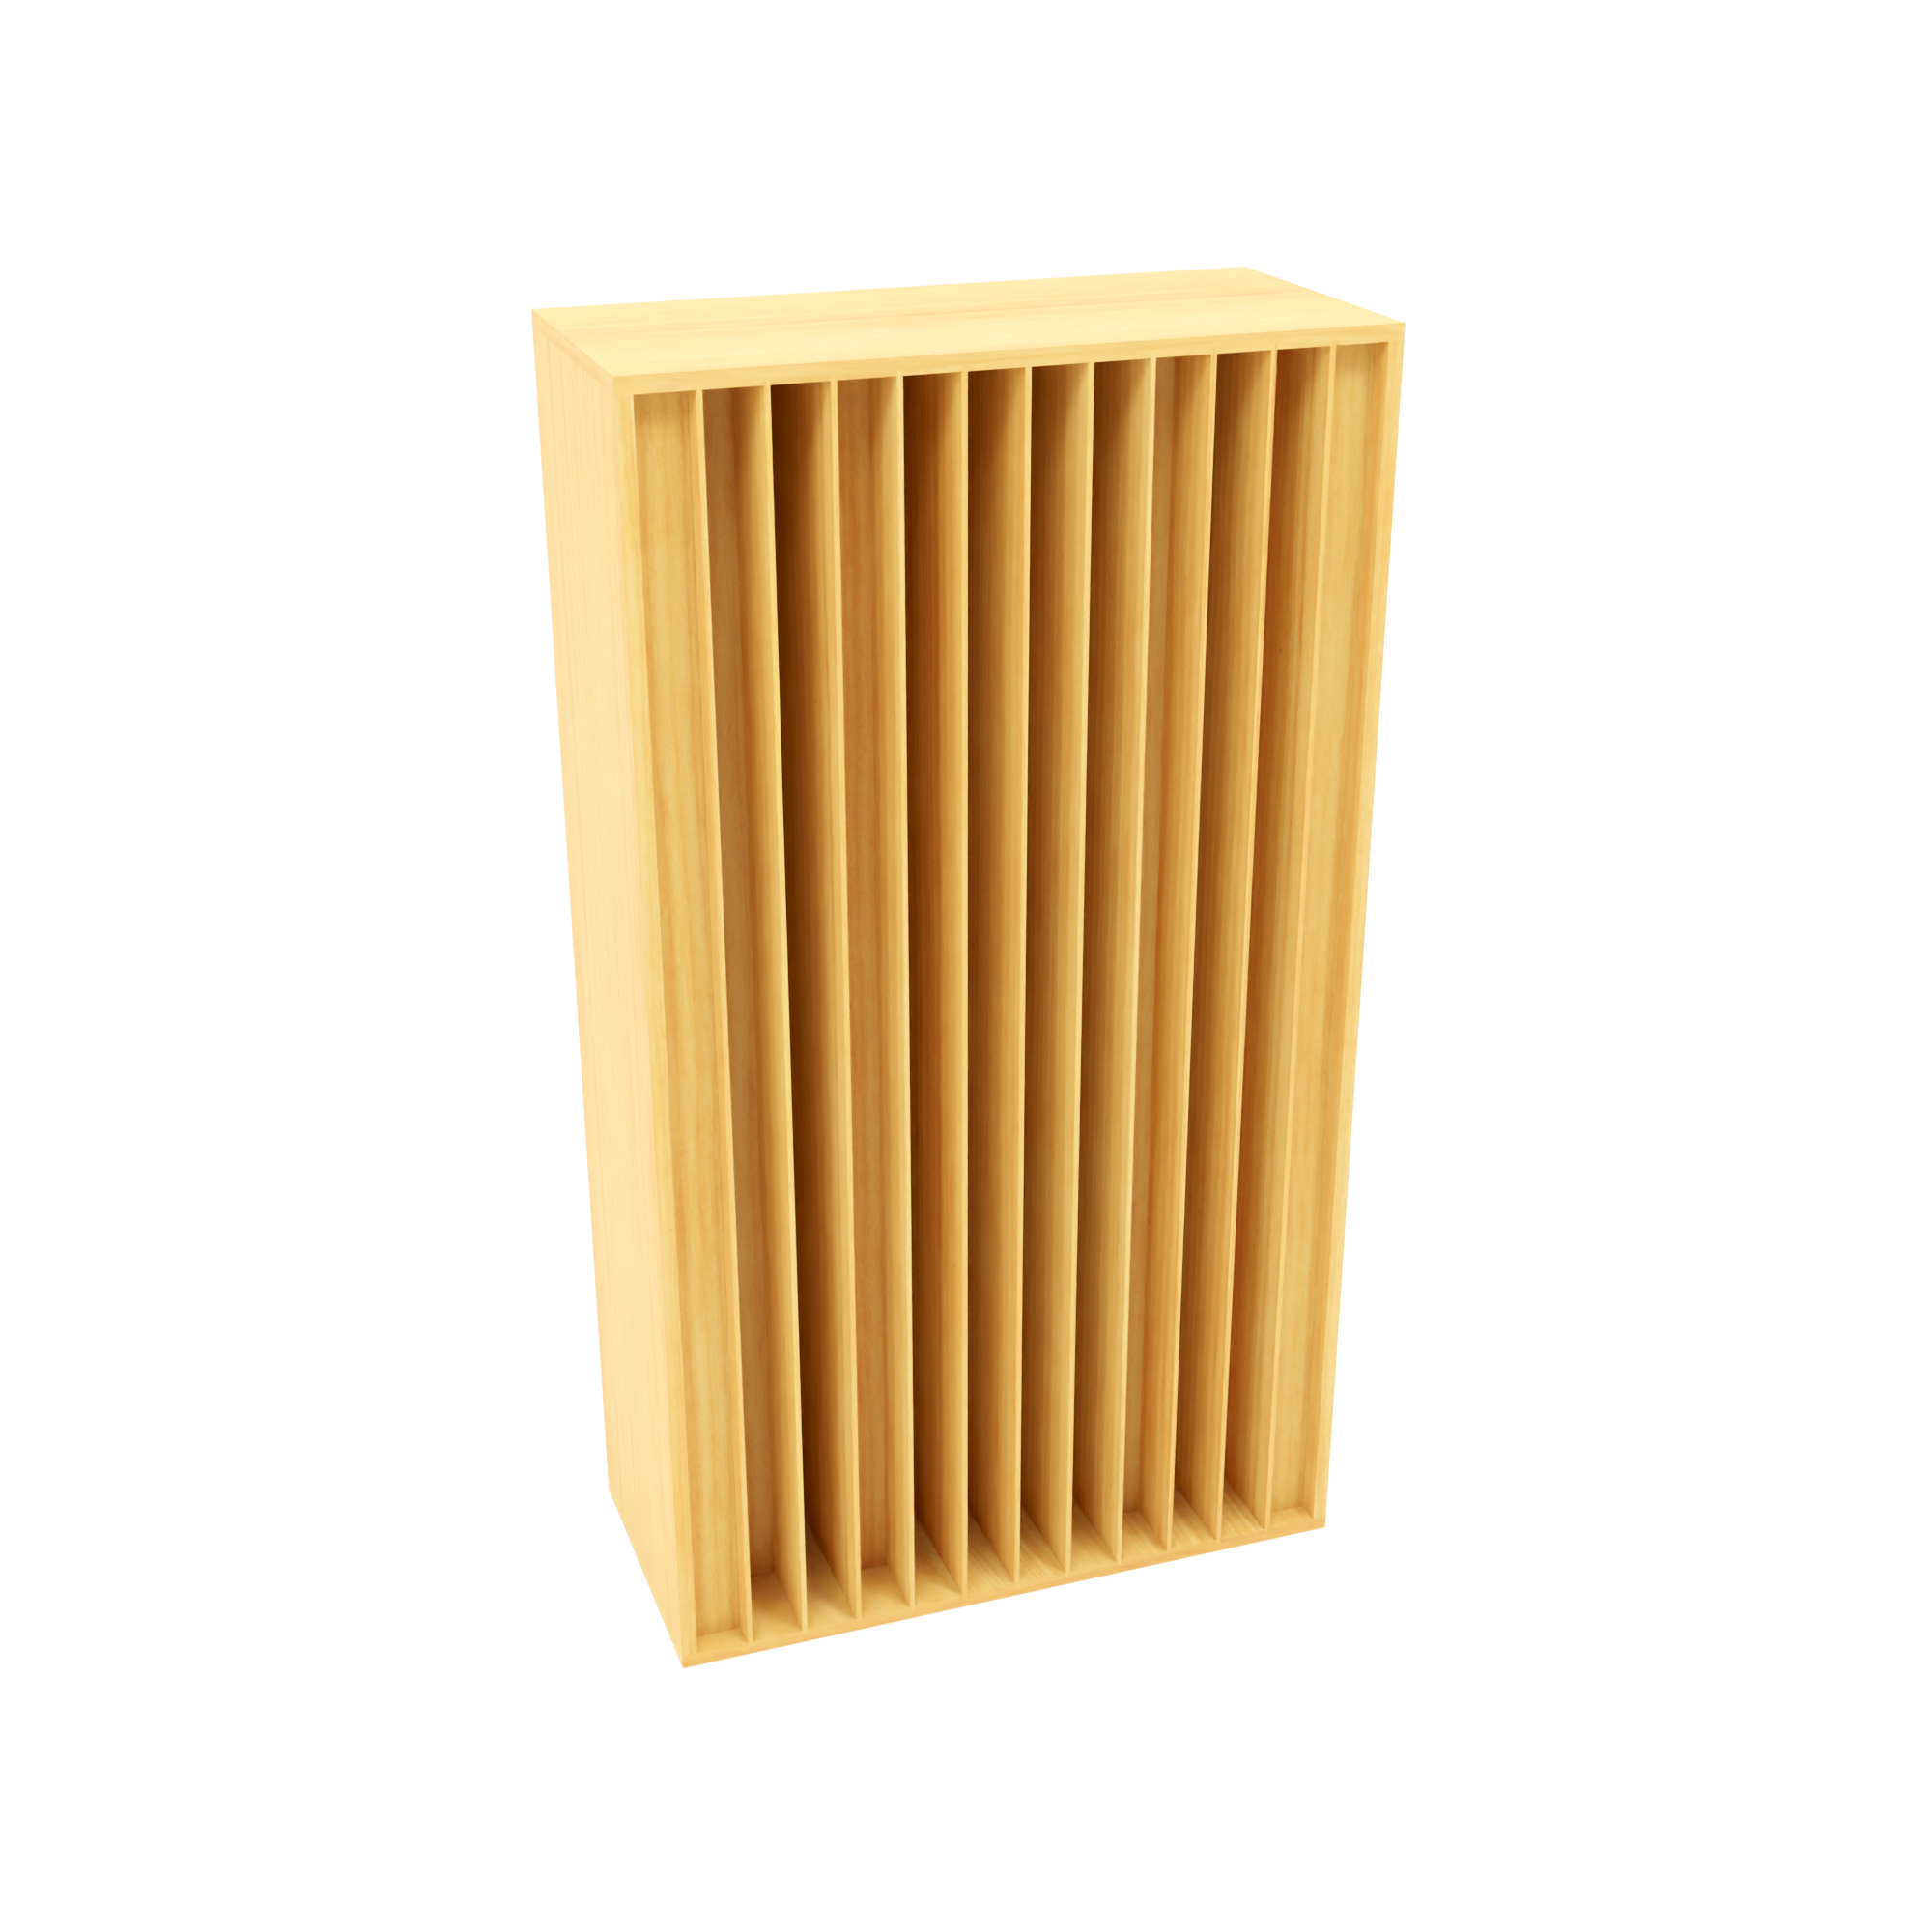 Product image of a QD-13 Quadratic Diffuser